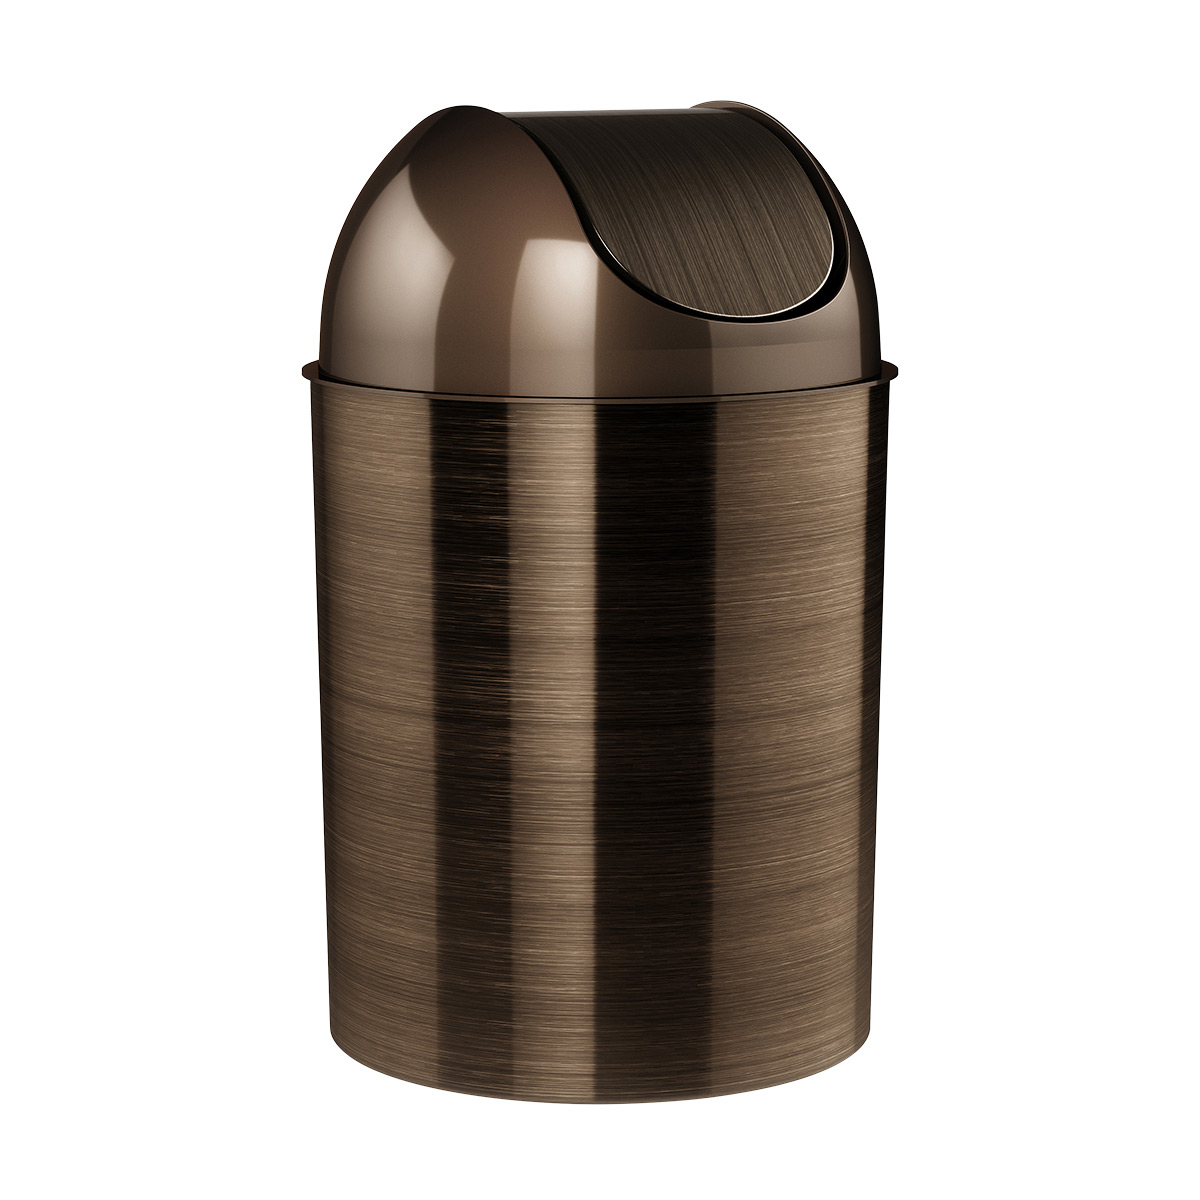 Bathroom Trash Can The Container, Small Bathroom Trash Can With Swing Lid